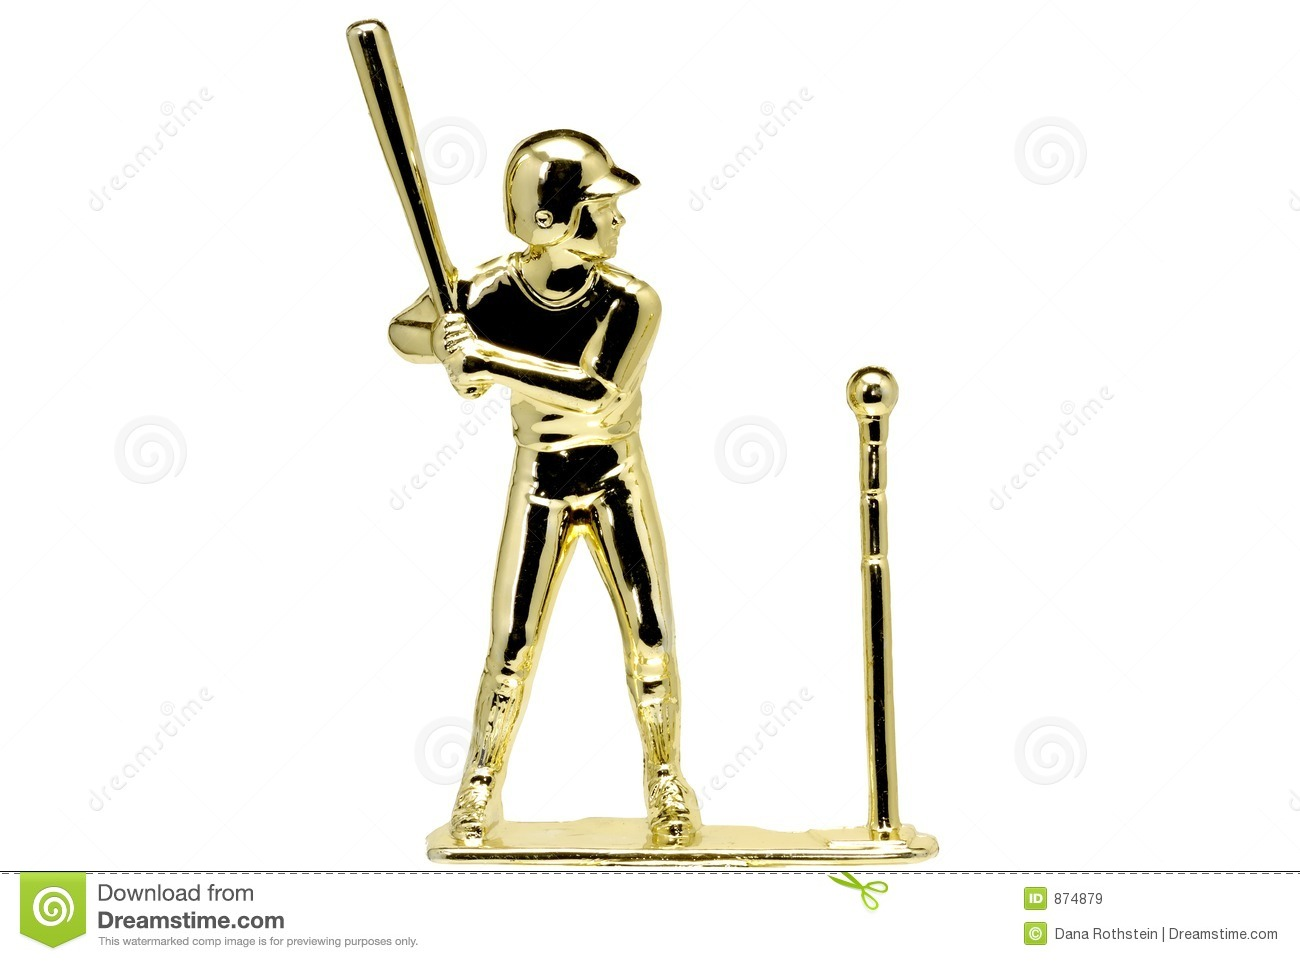 T-Ball Trophy Royalty Free Stock Images - Image: 874879